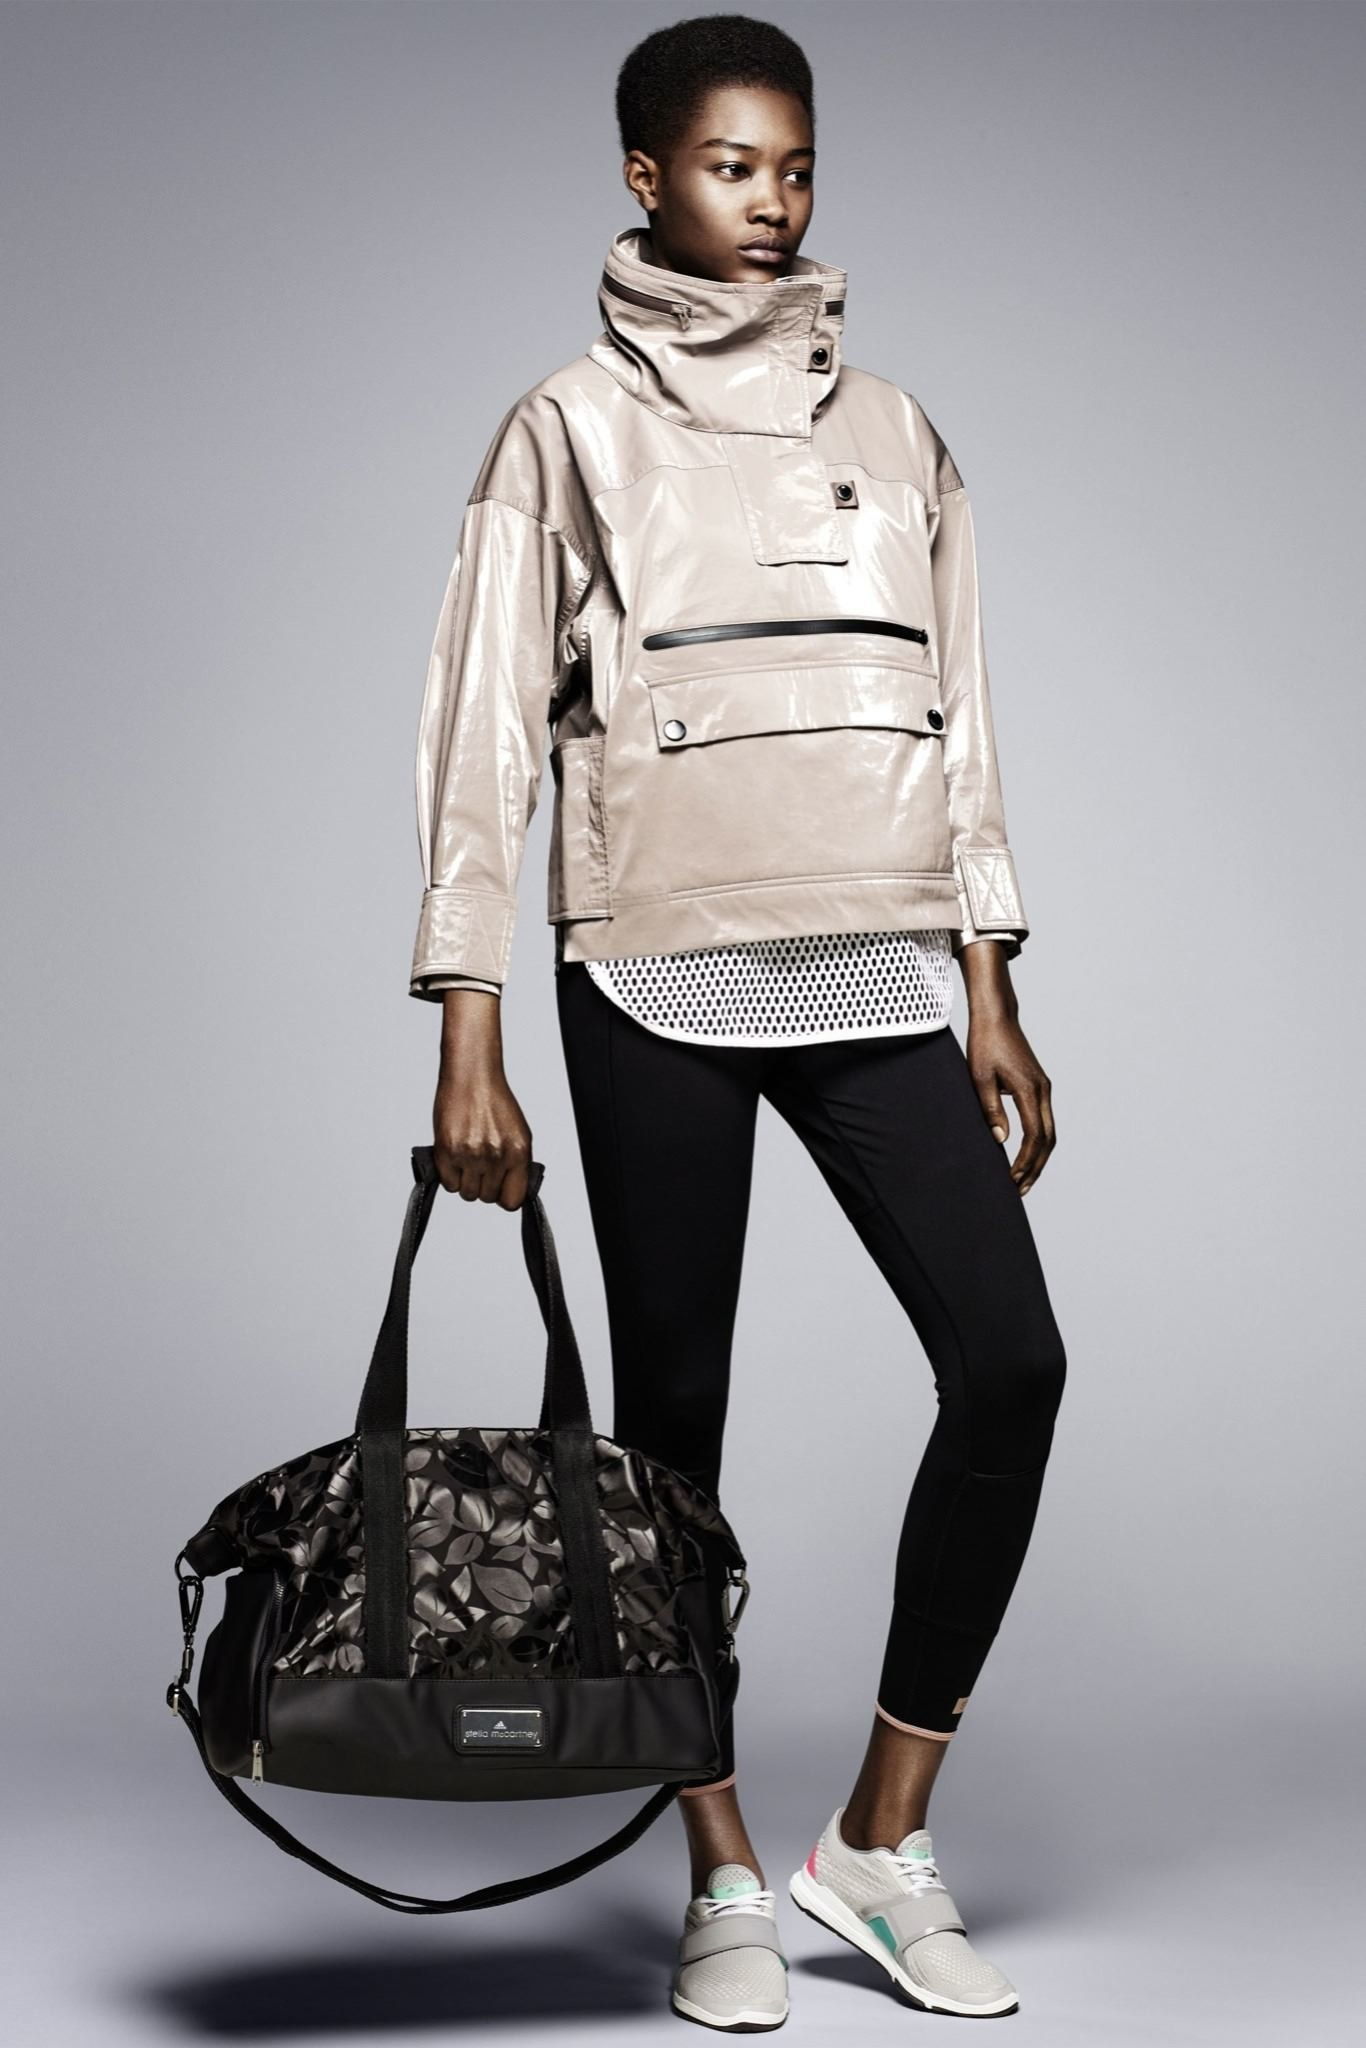 stella mccartney new collection adidas, Stella McCartney